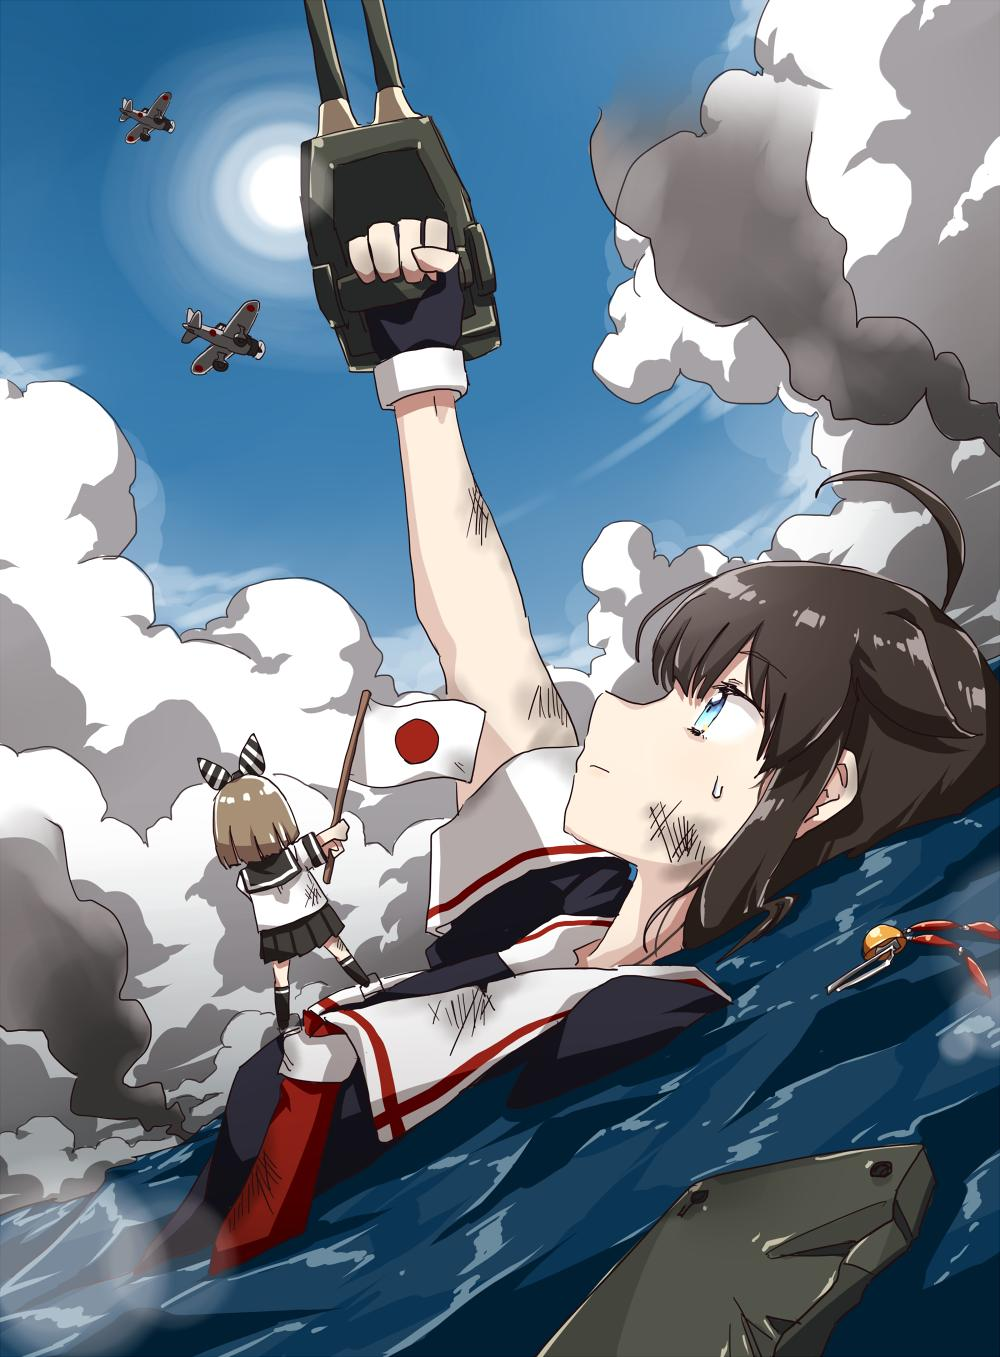 ahoge aircraft any_(lucky_denver_mint) arm_up bangs black_gloves blue_eyes breasts brown_hair eyebrows_visible_through_hair fairy_(kantai_collection) fingerless_gloves flag gloves hair_flaps hair_ornament highres injury japanese_flag kantai_collection long_hair minigirl outdoors partially_submerged red_neckwear remodel_(kantai_collection) sailor_collar school_uniform scratches serafuku shigure_(kantai_collection) short_sleeves sky smoke sweat water